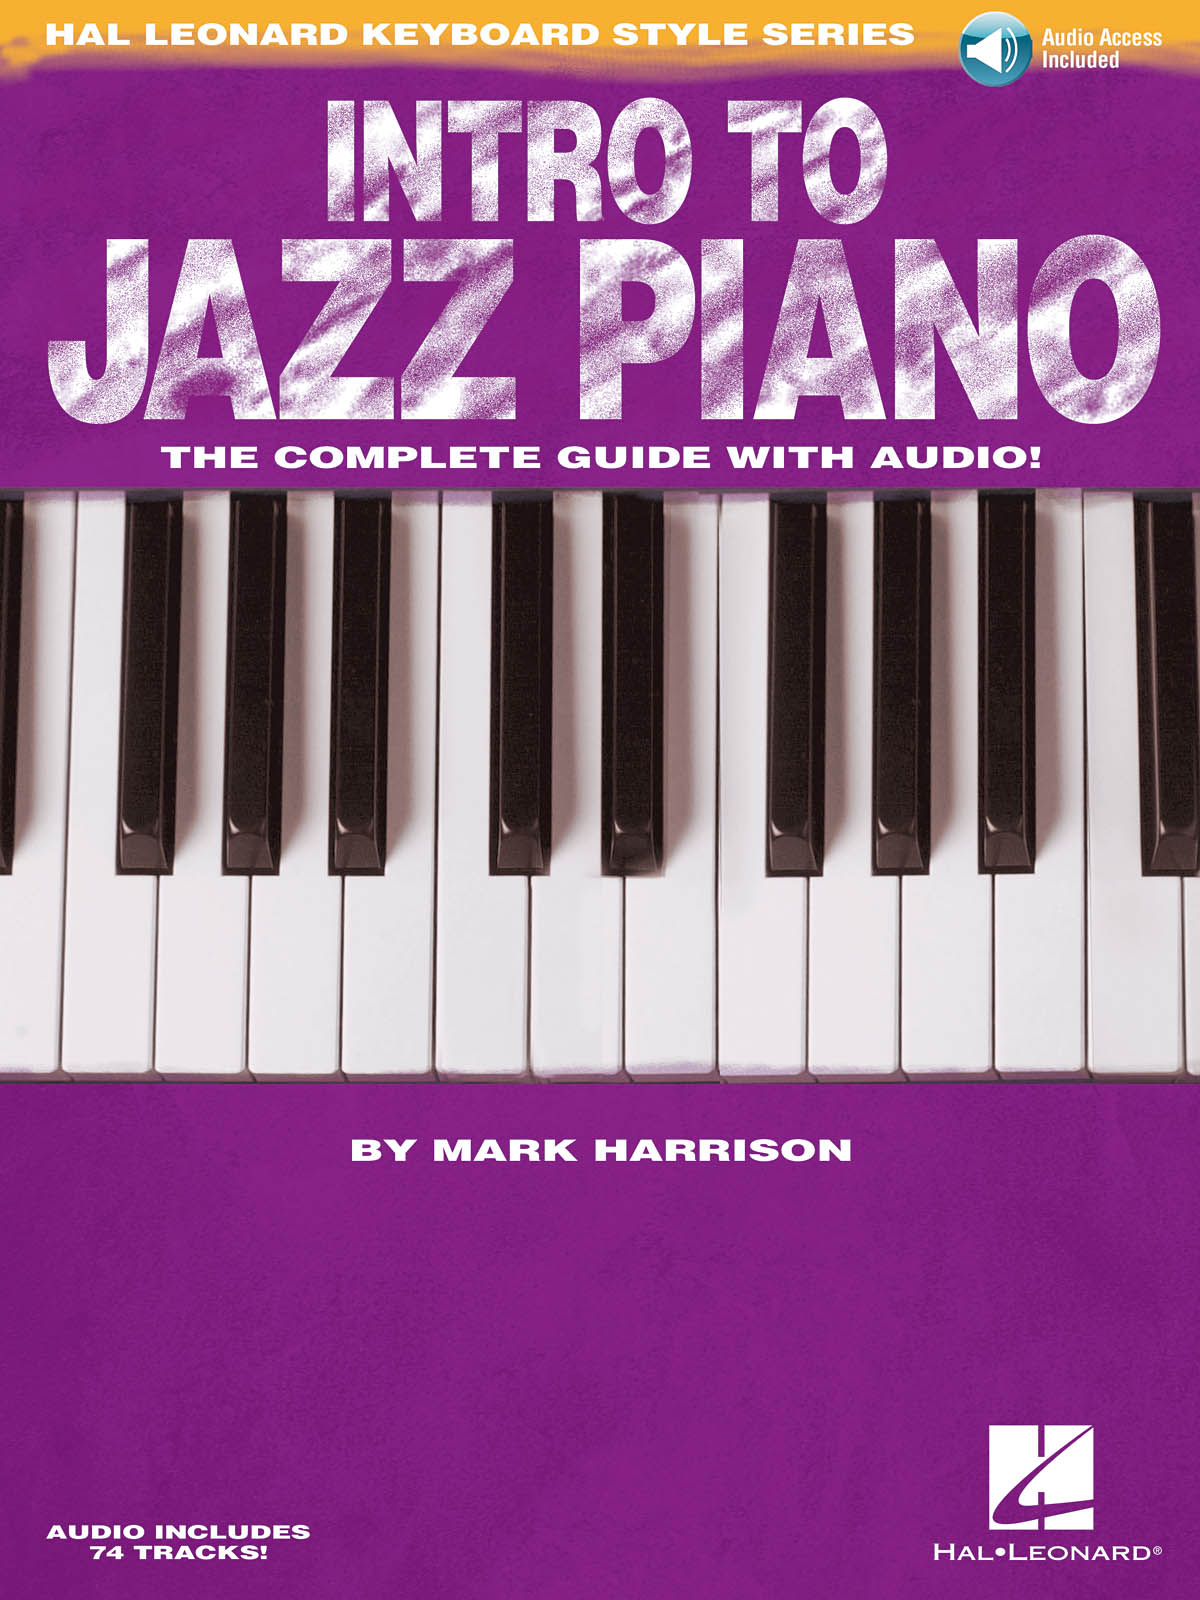 HARRISON MARK - INTRO TO JAZZ PIANO